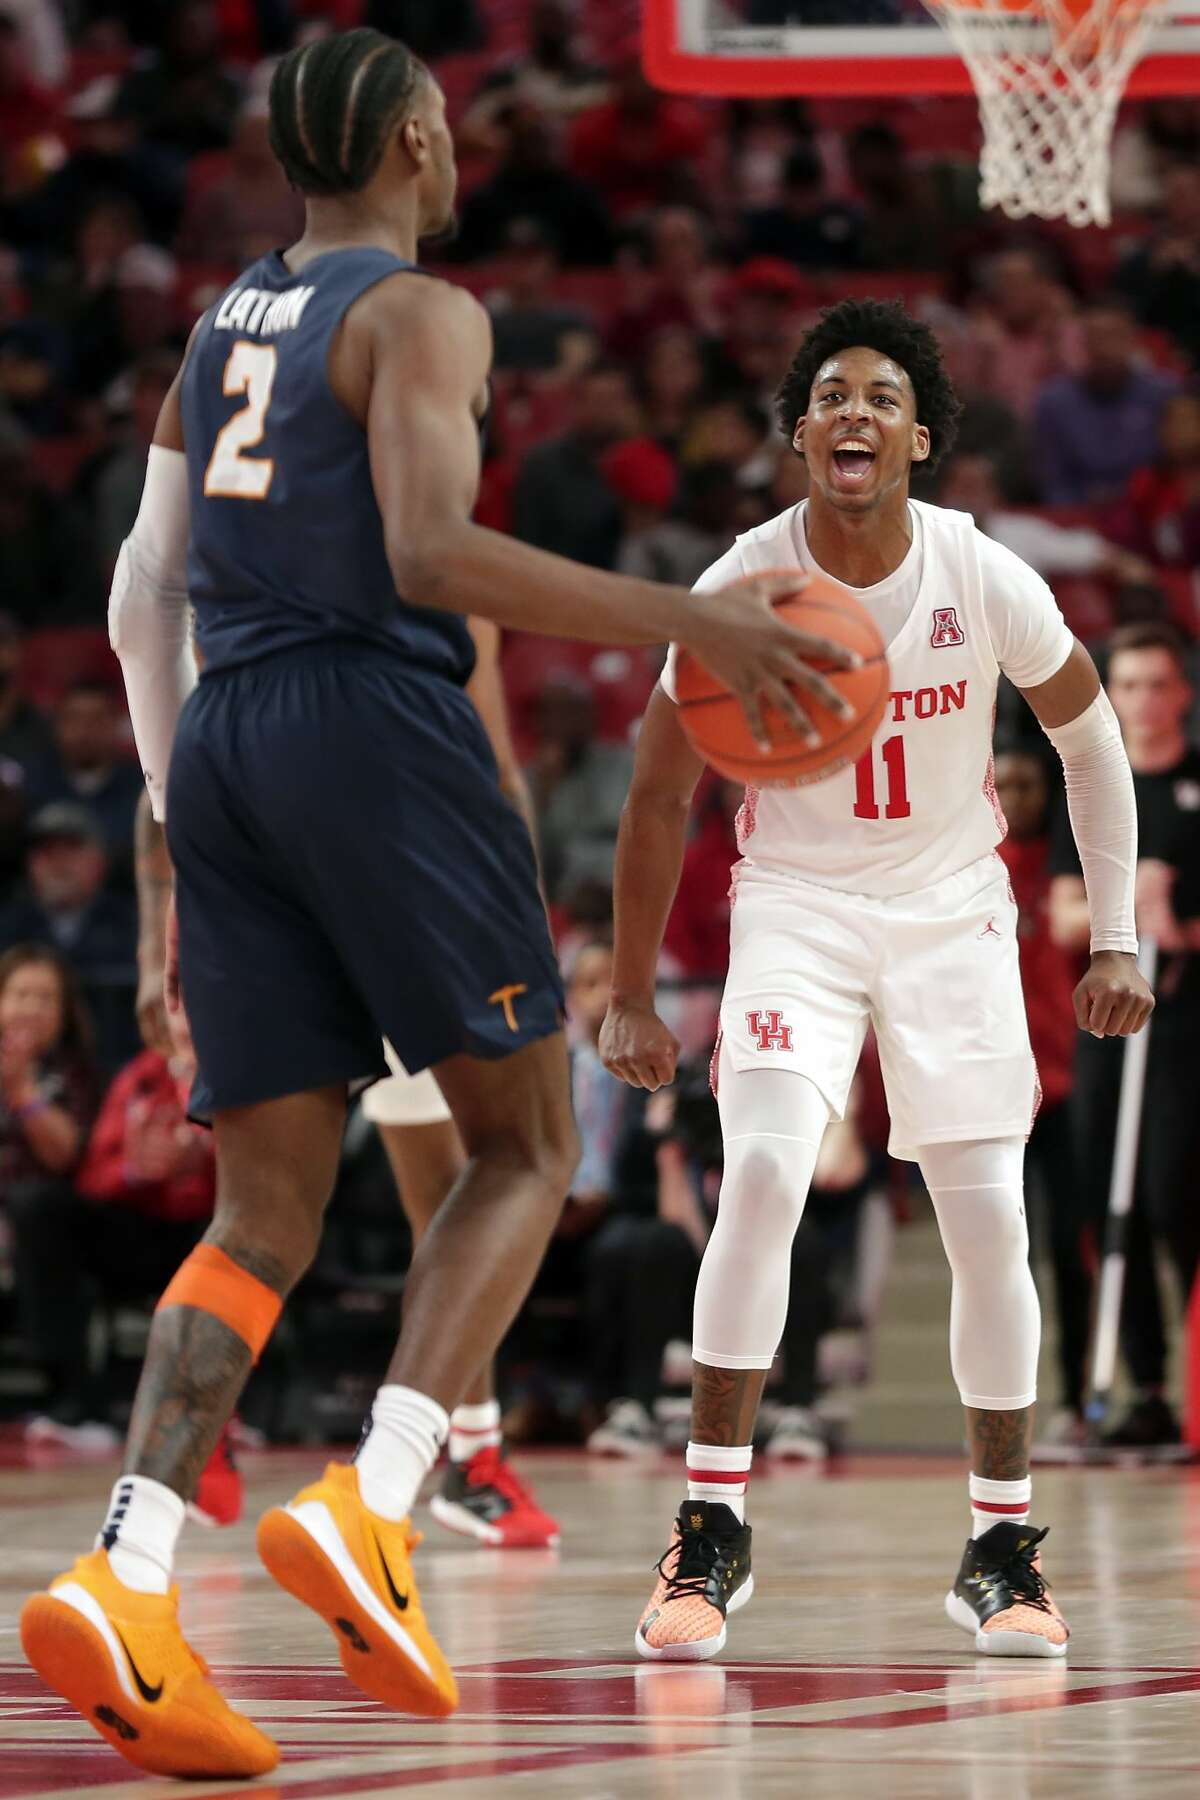 Houston guard Nate Hinton (11) continues his reaction after a three point shot as UTEP guard Jordan Lathon (2) brings the ball down during the second half of their game Thursday, Dec. 19, 2019 in Houston, TX.